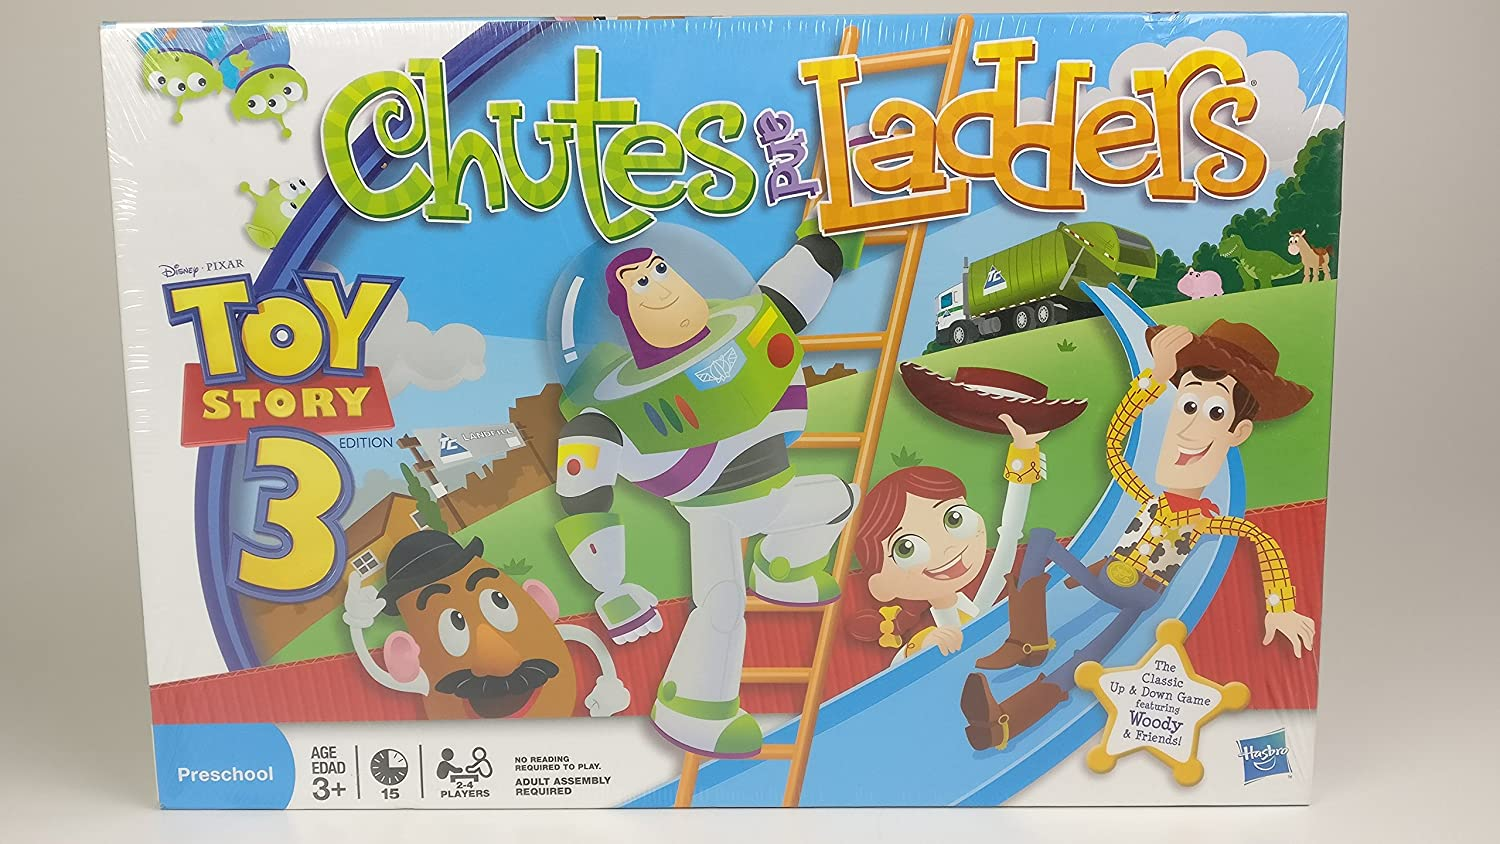 Chutes & Ladders - Toy Story 3 Edition